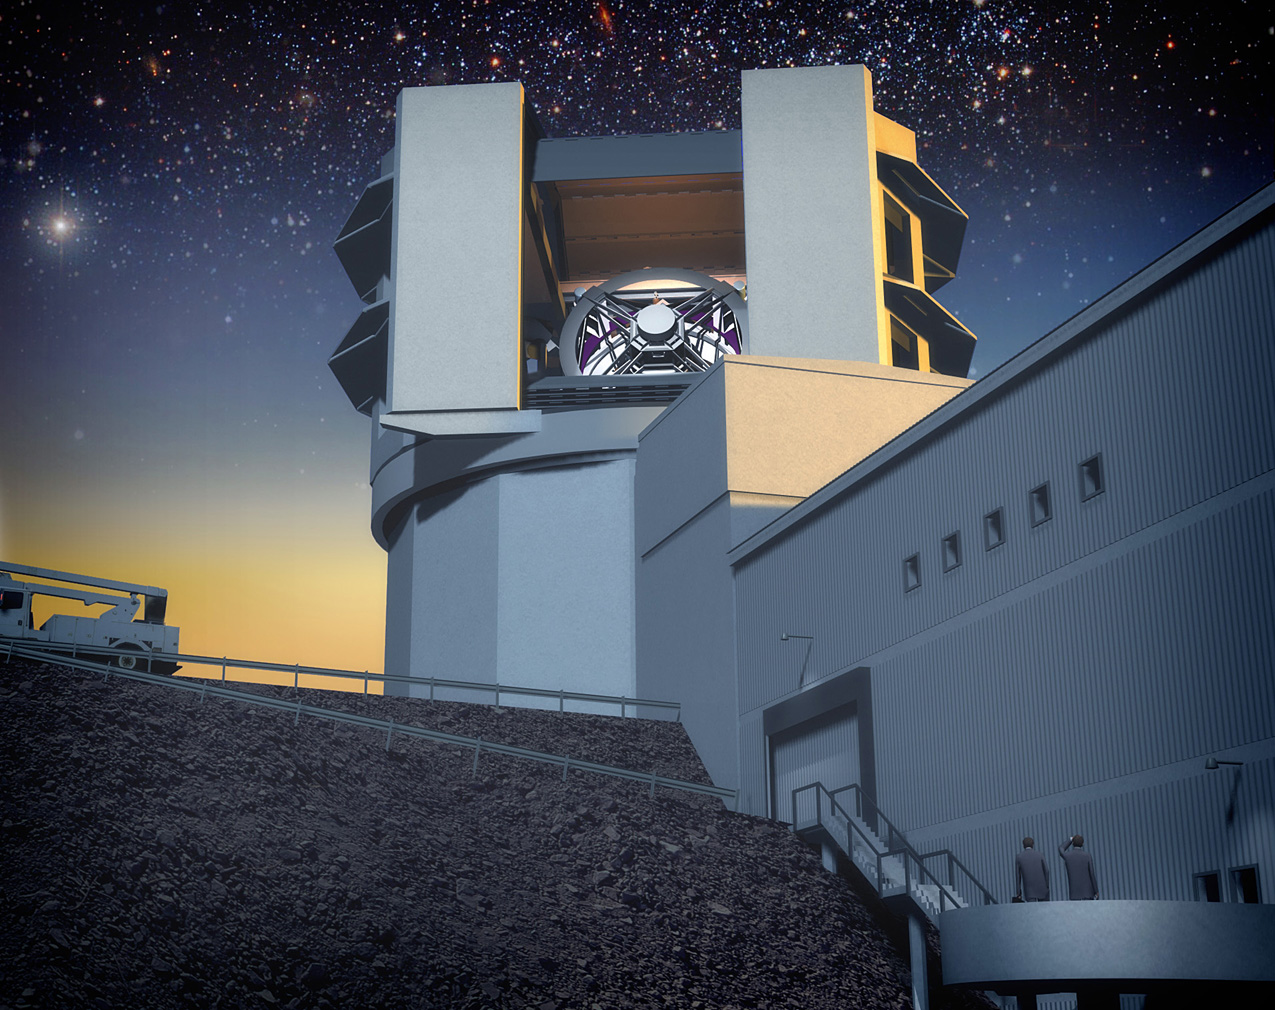 Concept art of the completed LSST telescope in South America.  www.lsst.org